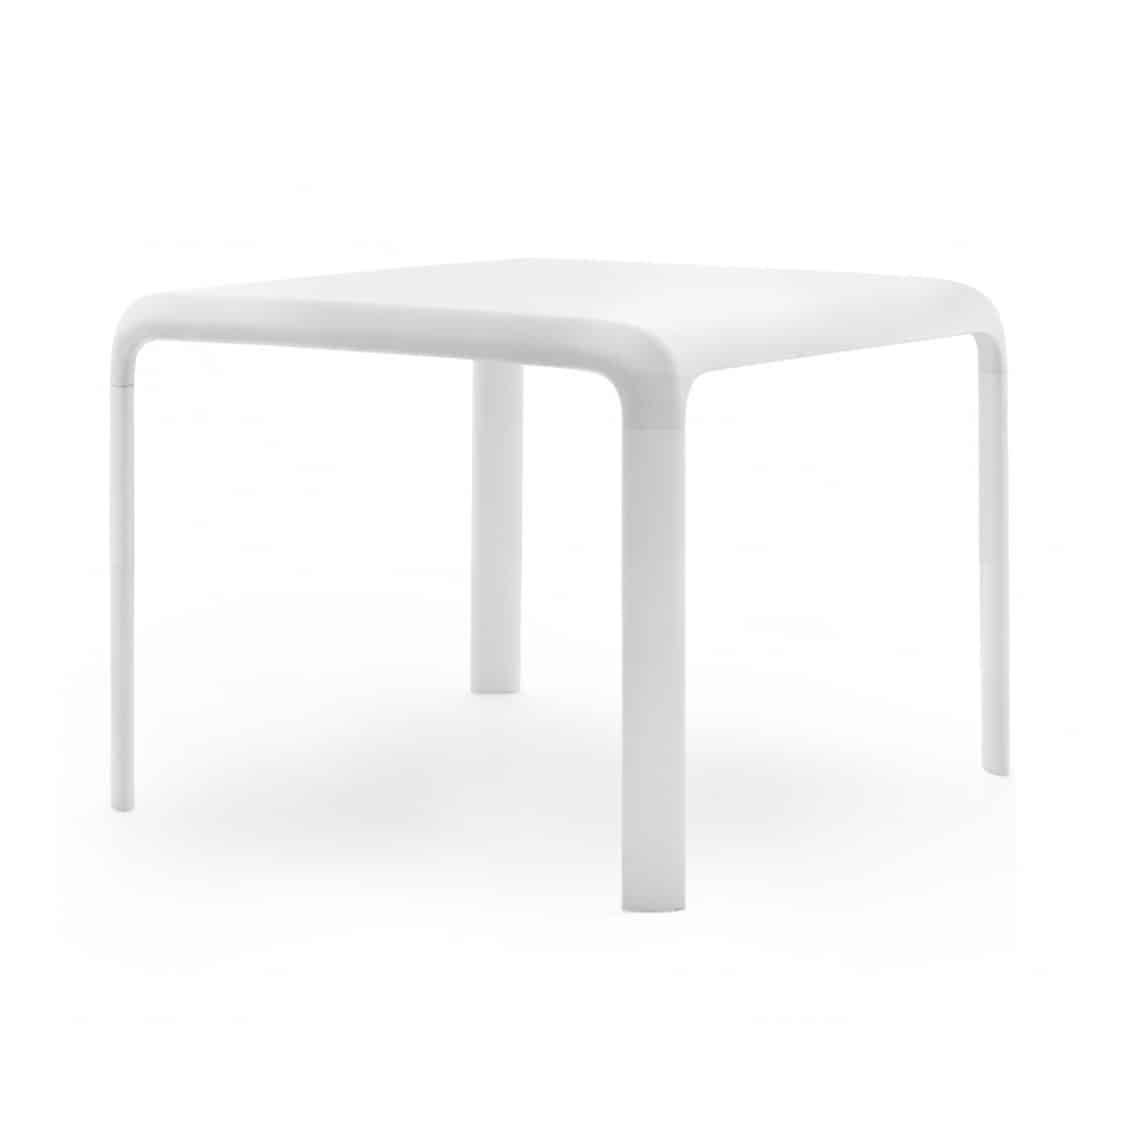 Snow Table Stackable Outdoor Chair Pedrali at DeFrae Contract Furniture